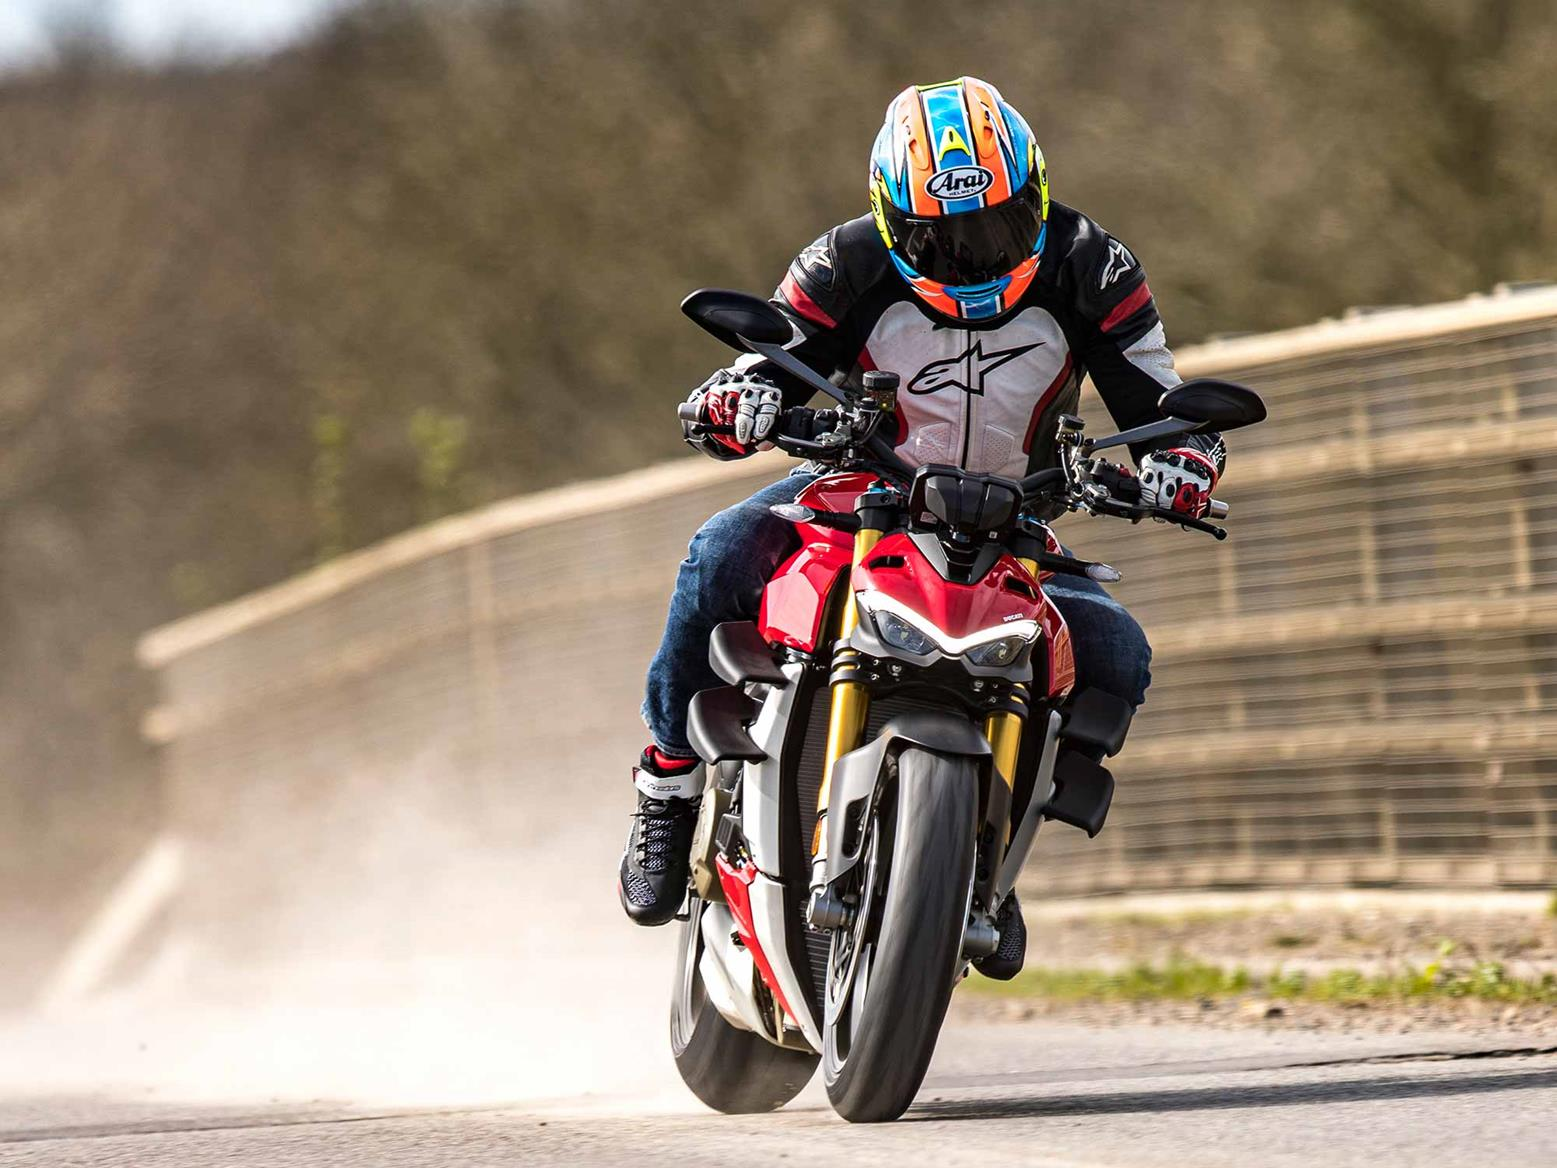 DUCATI STREETFIGHTER V4S (2020-on) Review